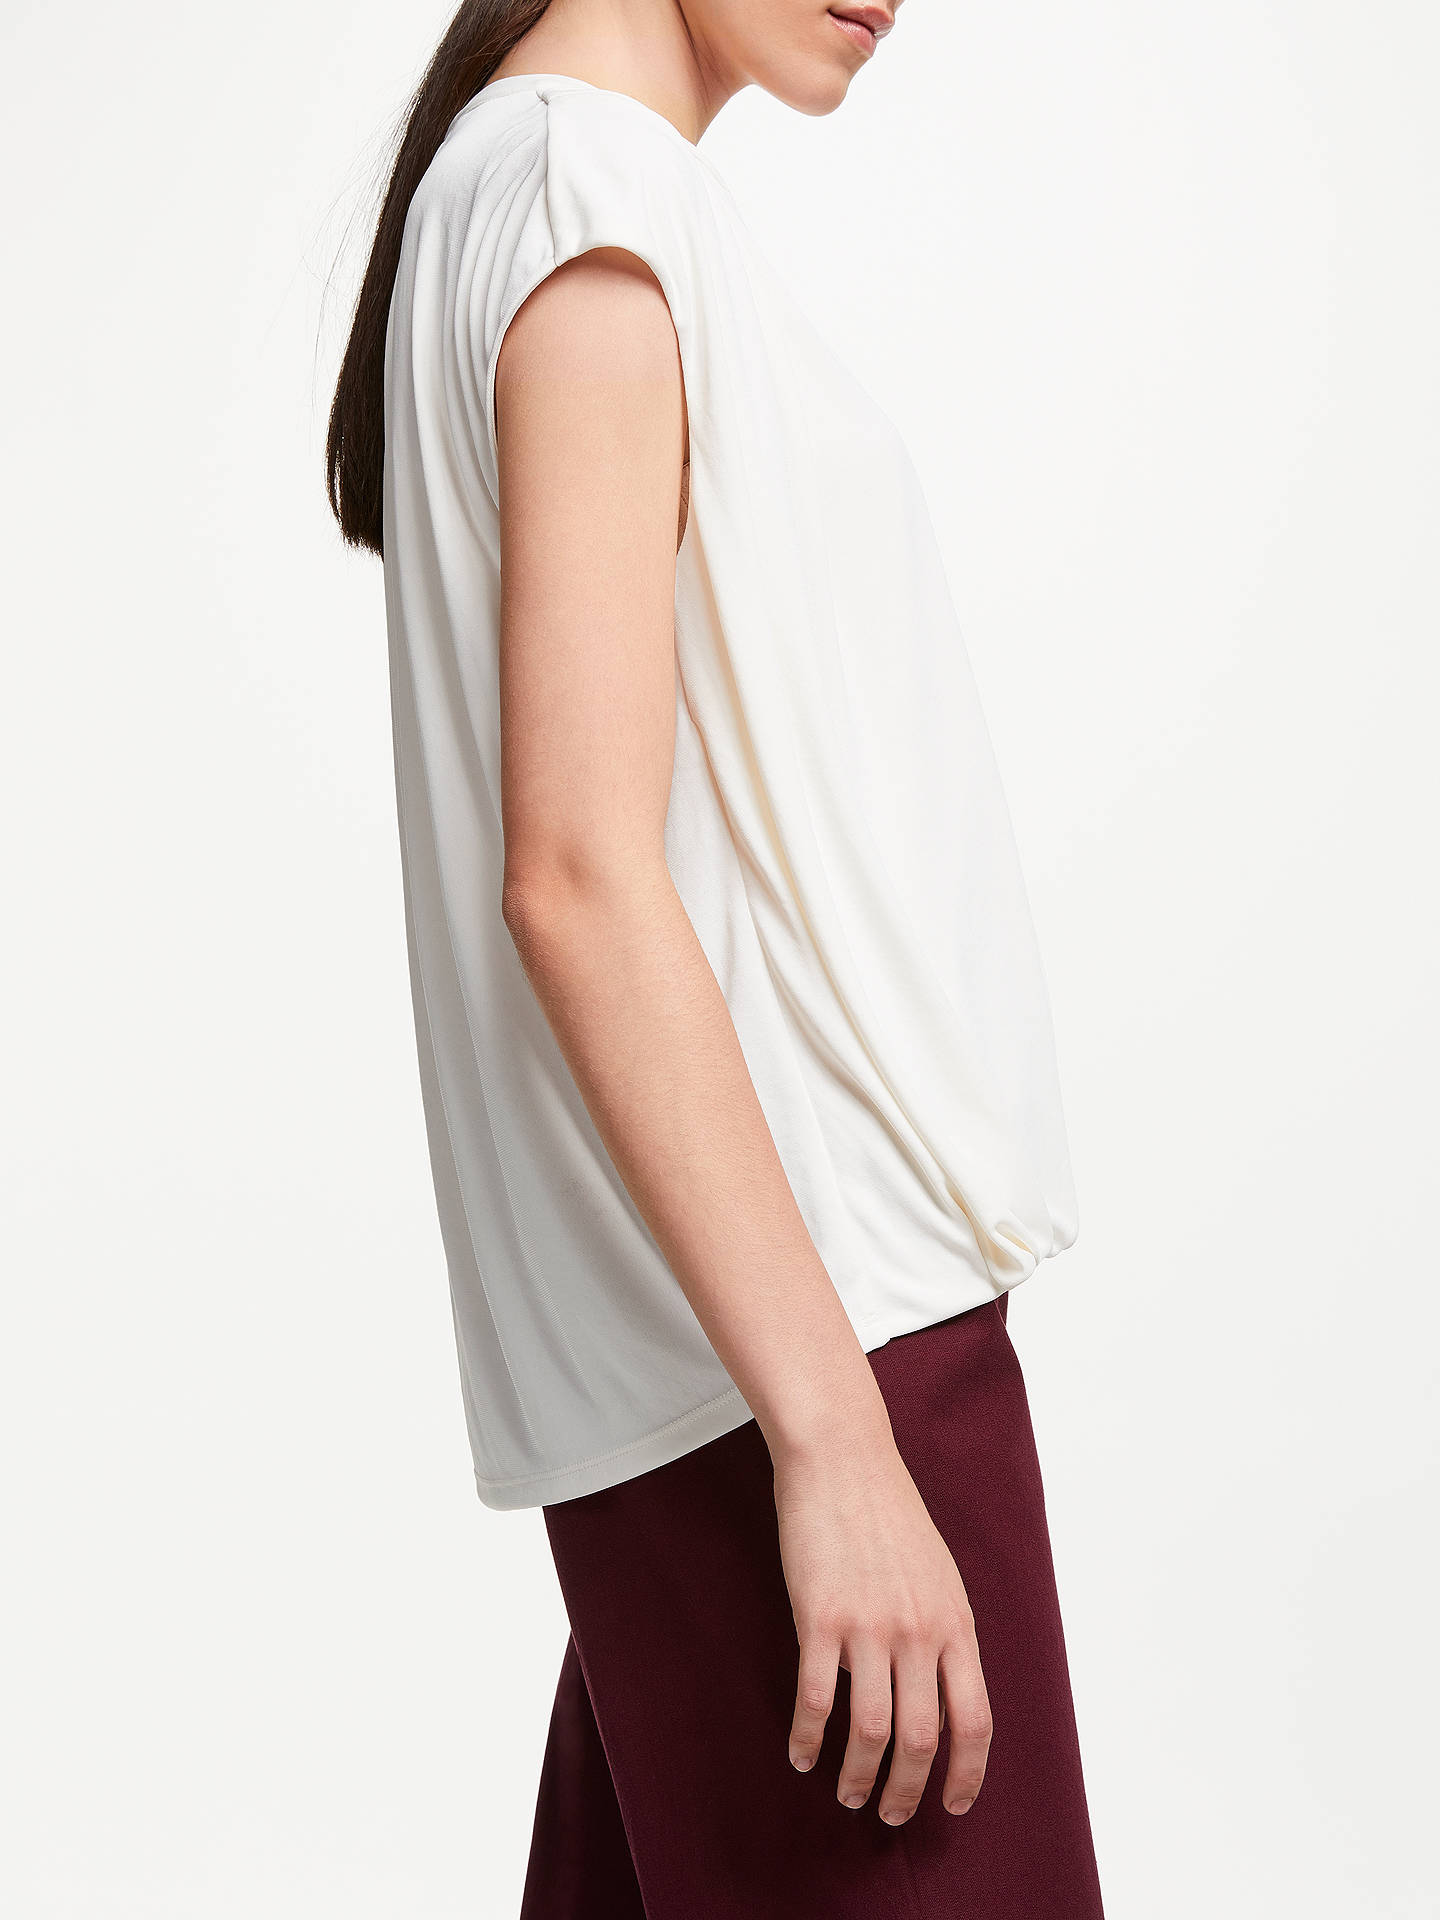 BuyJohn Lewis & Partners Cap Sleeve Gather Detail Top, Ivory, 8 Online at johnlewis.com